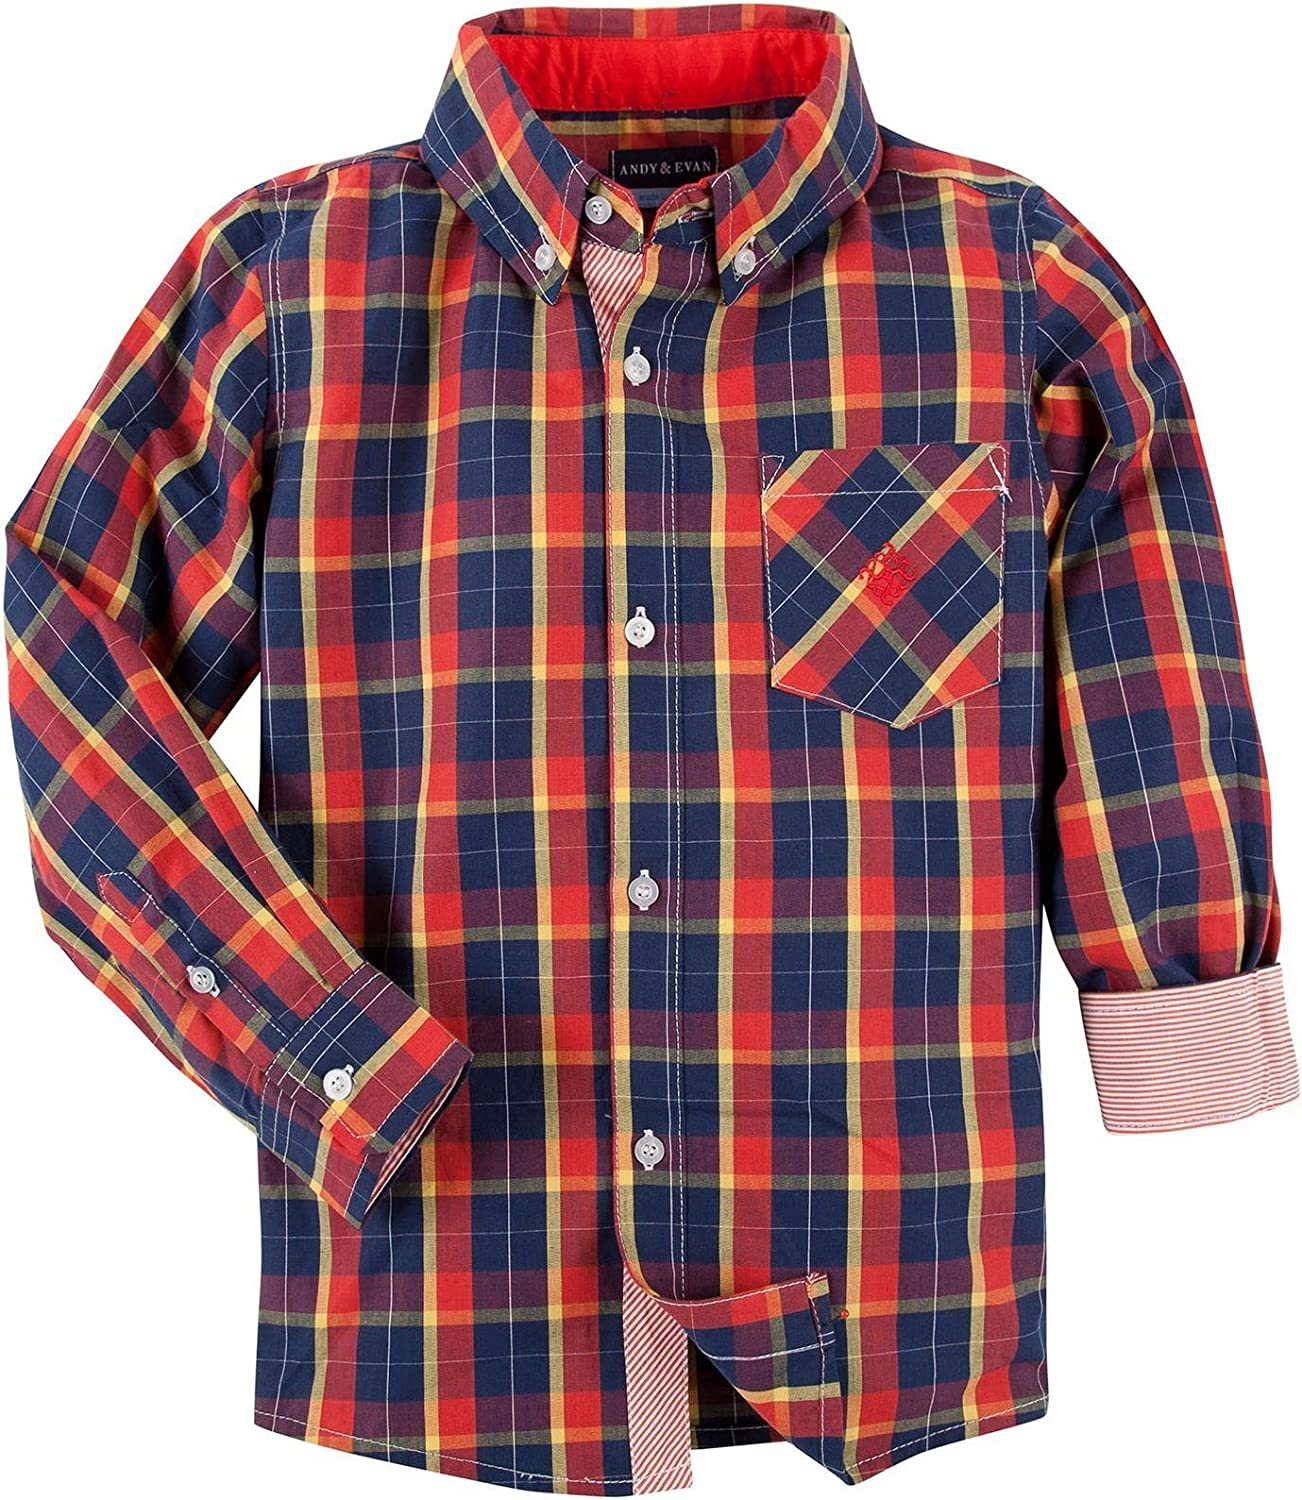 Andy & Evan Little Boy's Plaid Shirt (Toddler/Kid) - Red - 6